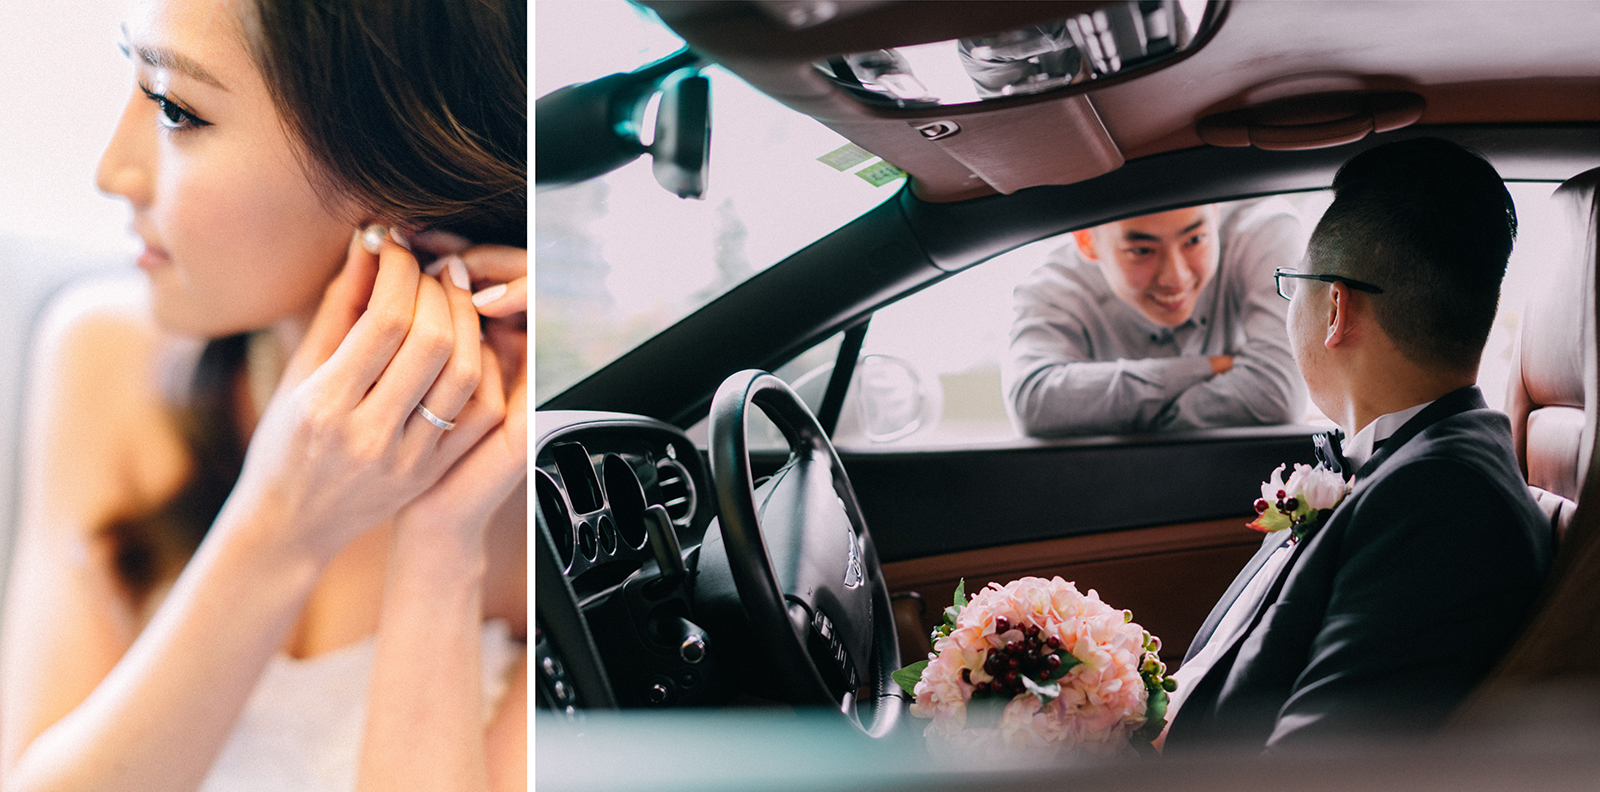 28-hellojanelee-kenneth-proposal-wedding-malaysia